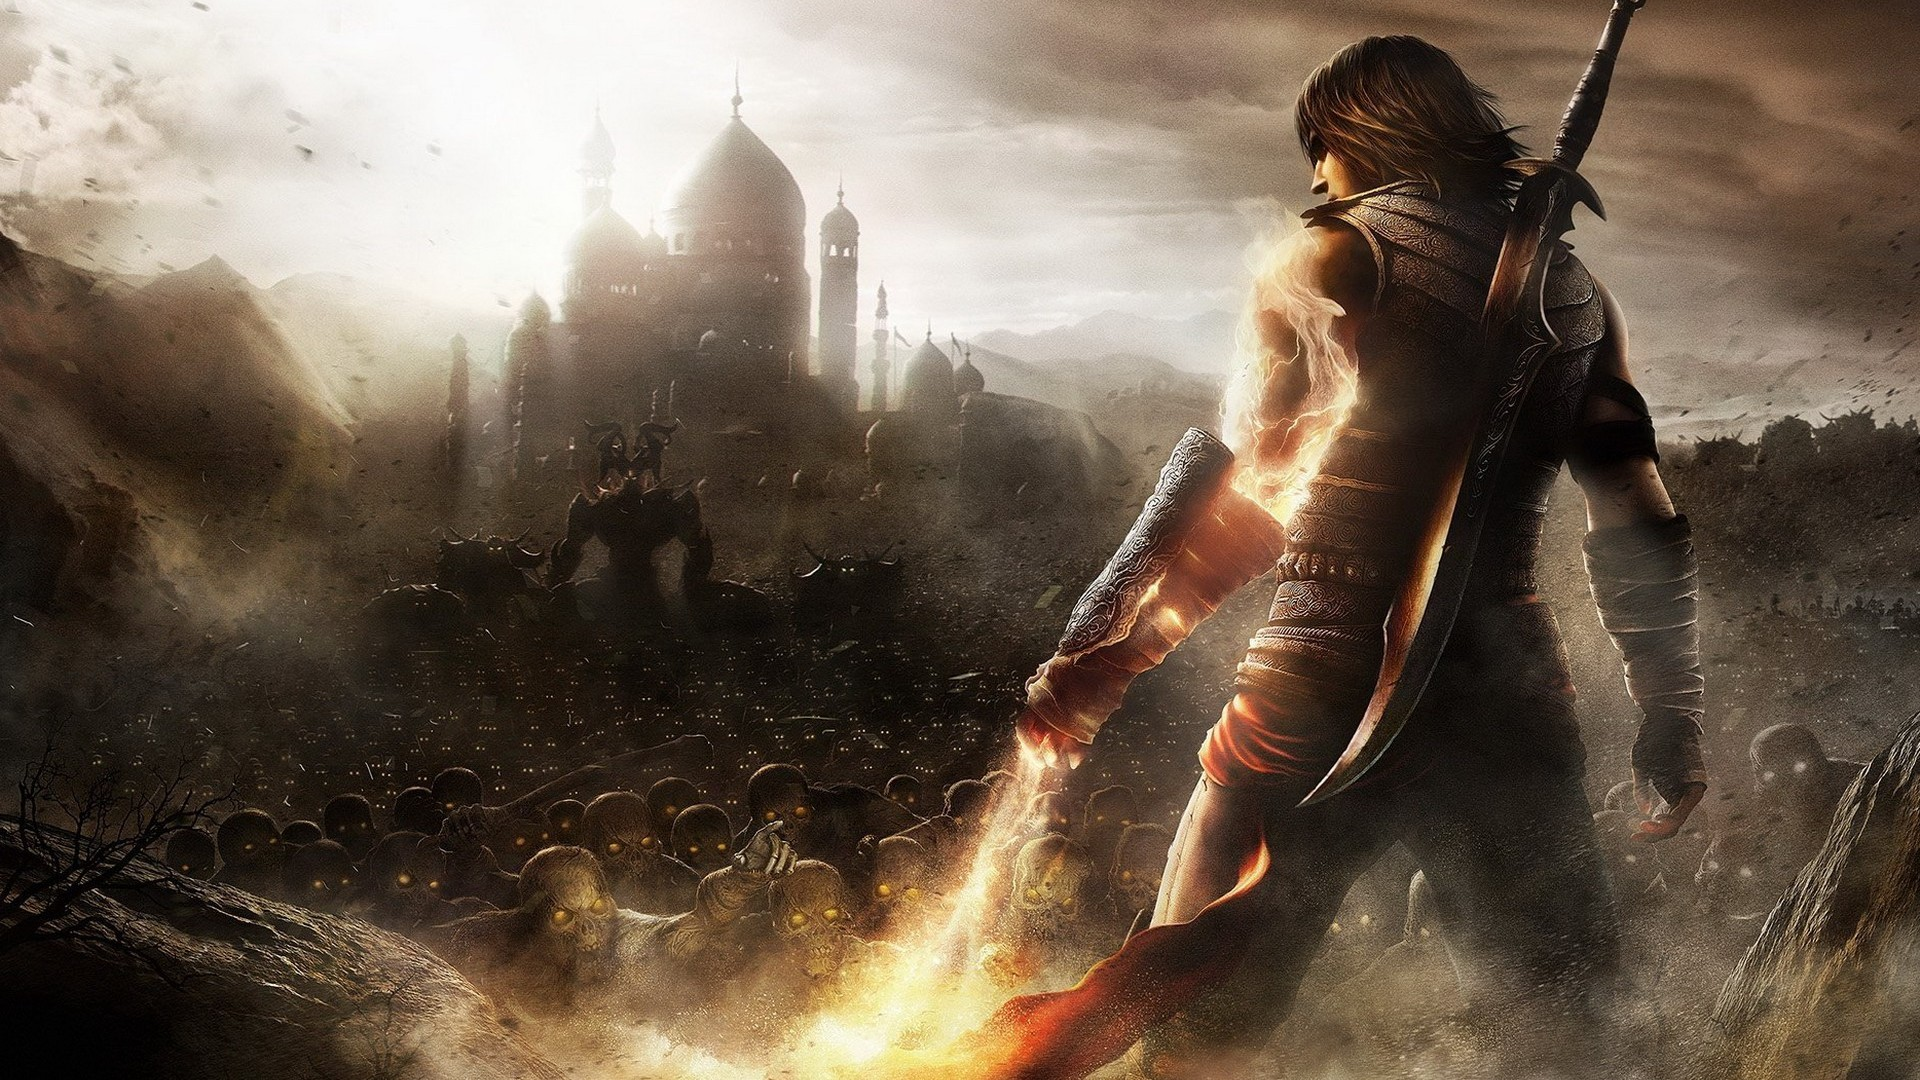 Video Game - Prince Of Persia: The Forgotten Sands  Bakgrund